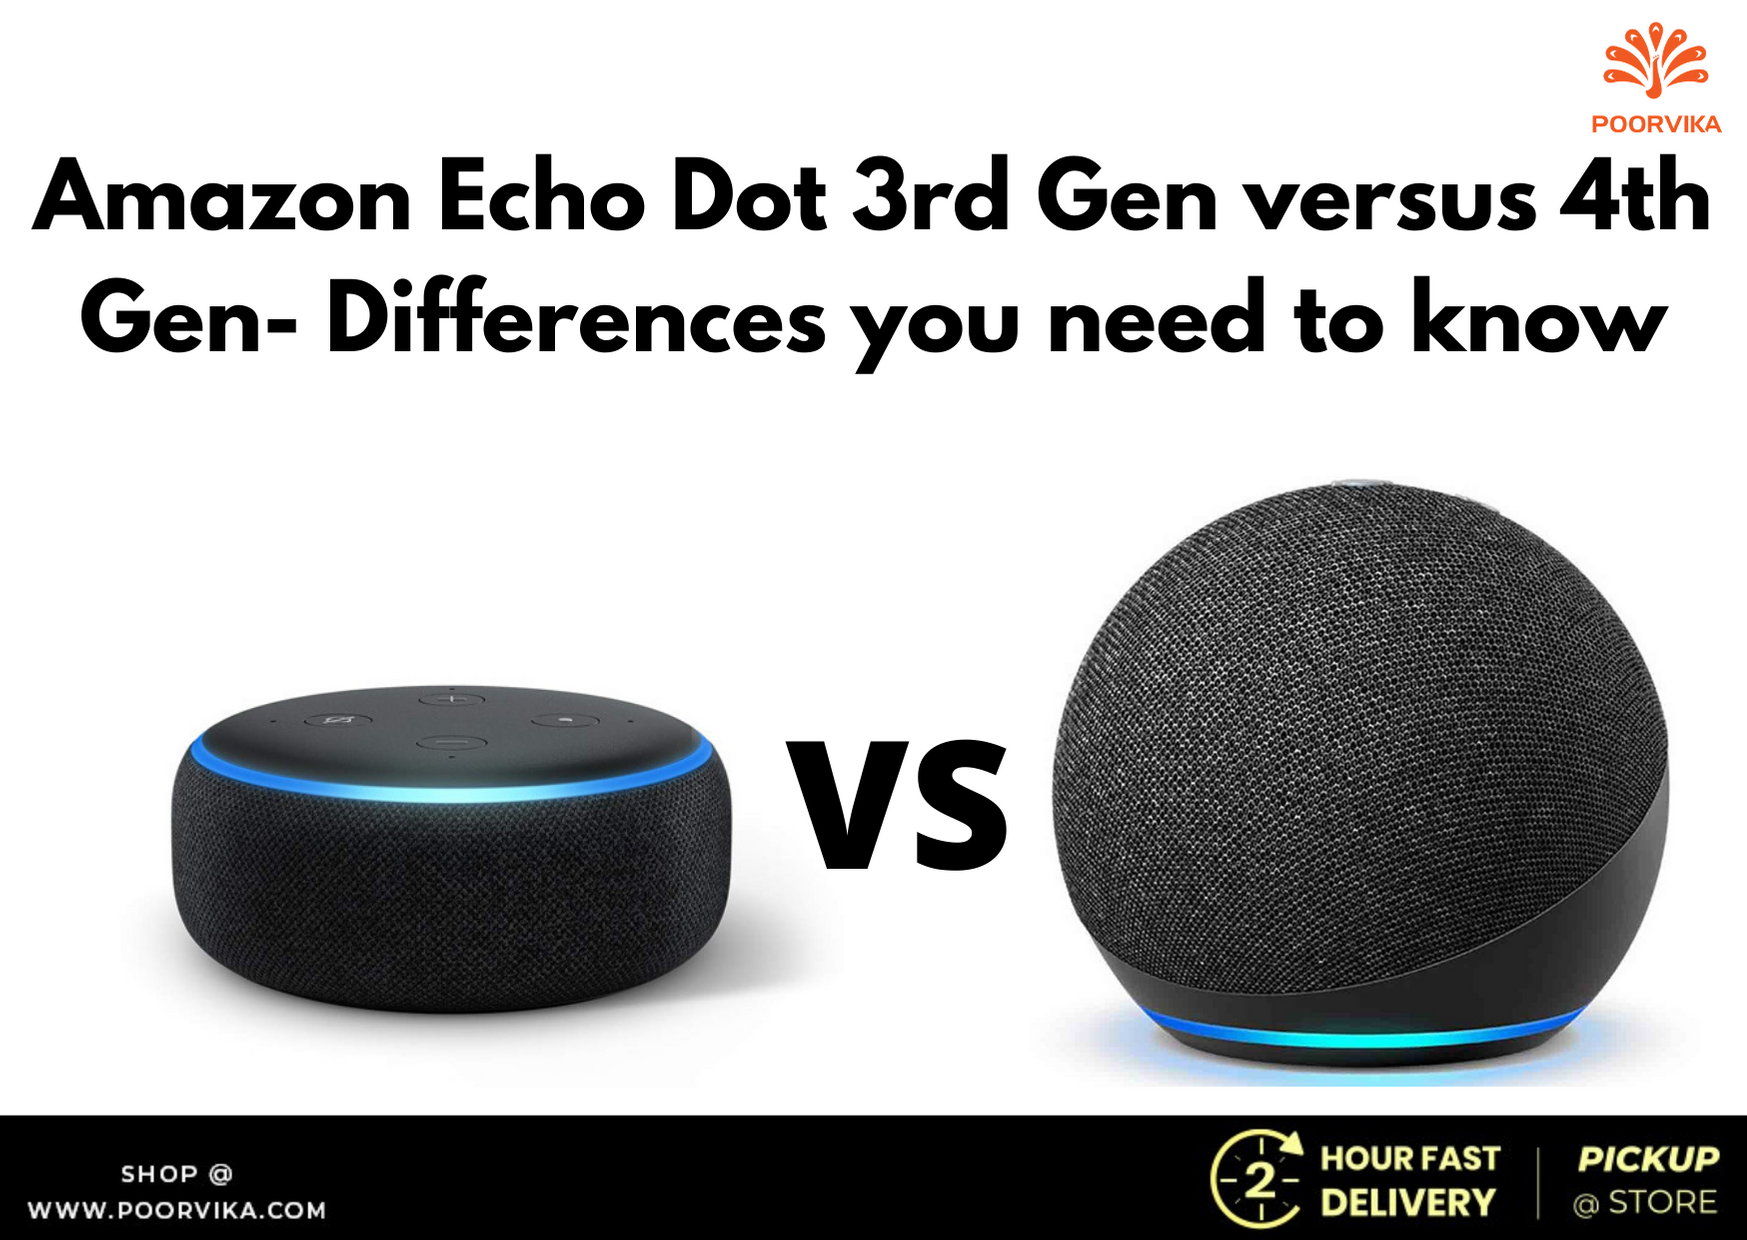 Amazon-echo-dot-3rd-gen-versus-4th-gen-differences-you-need-to-know